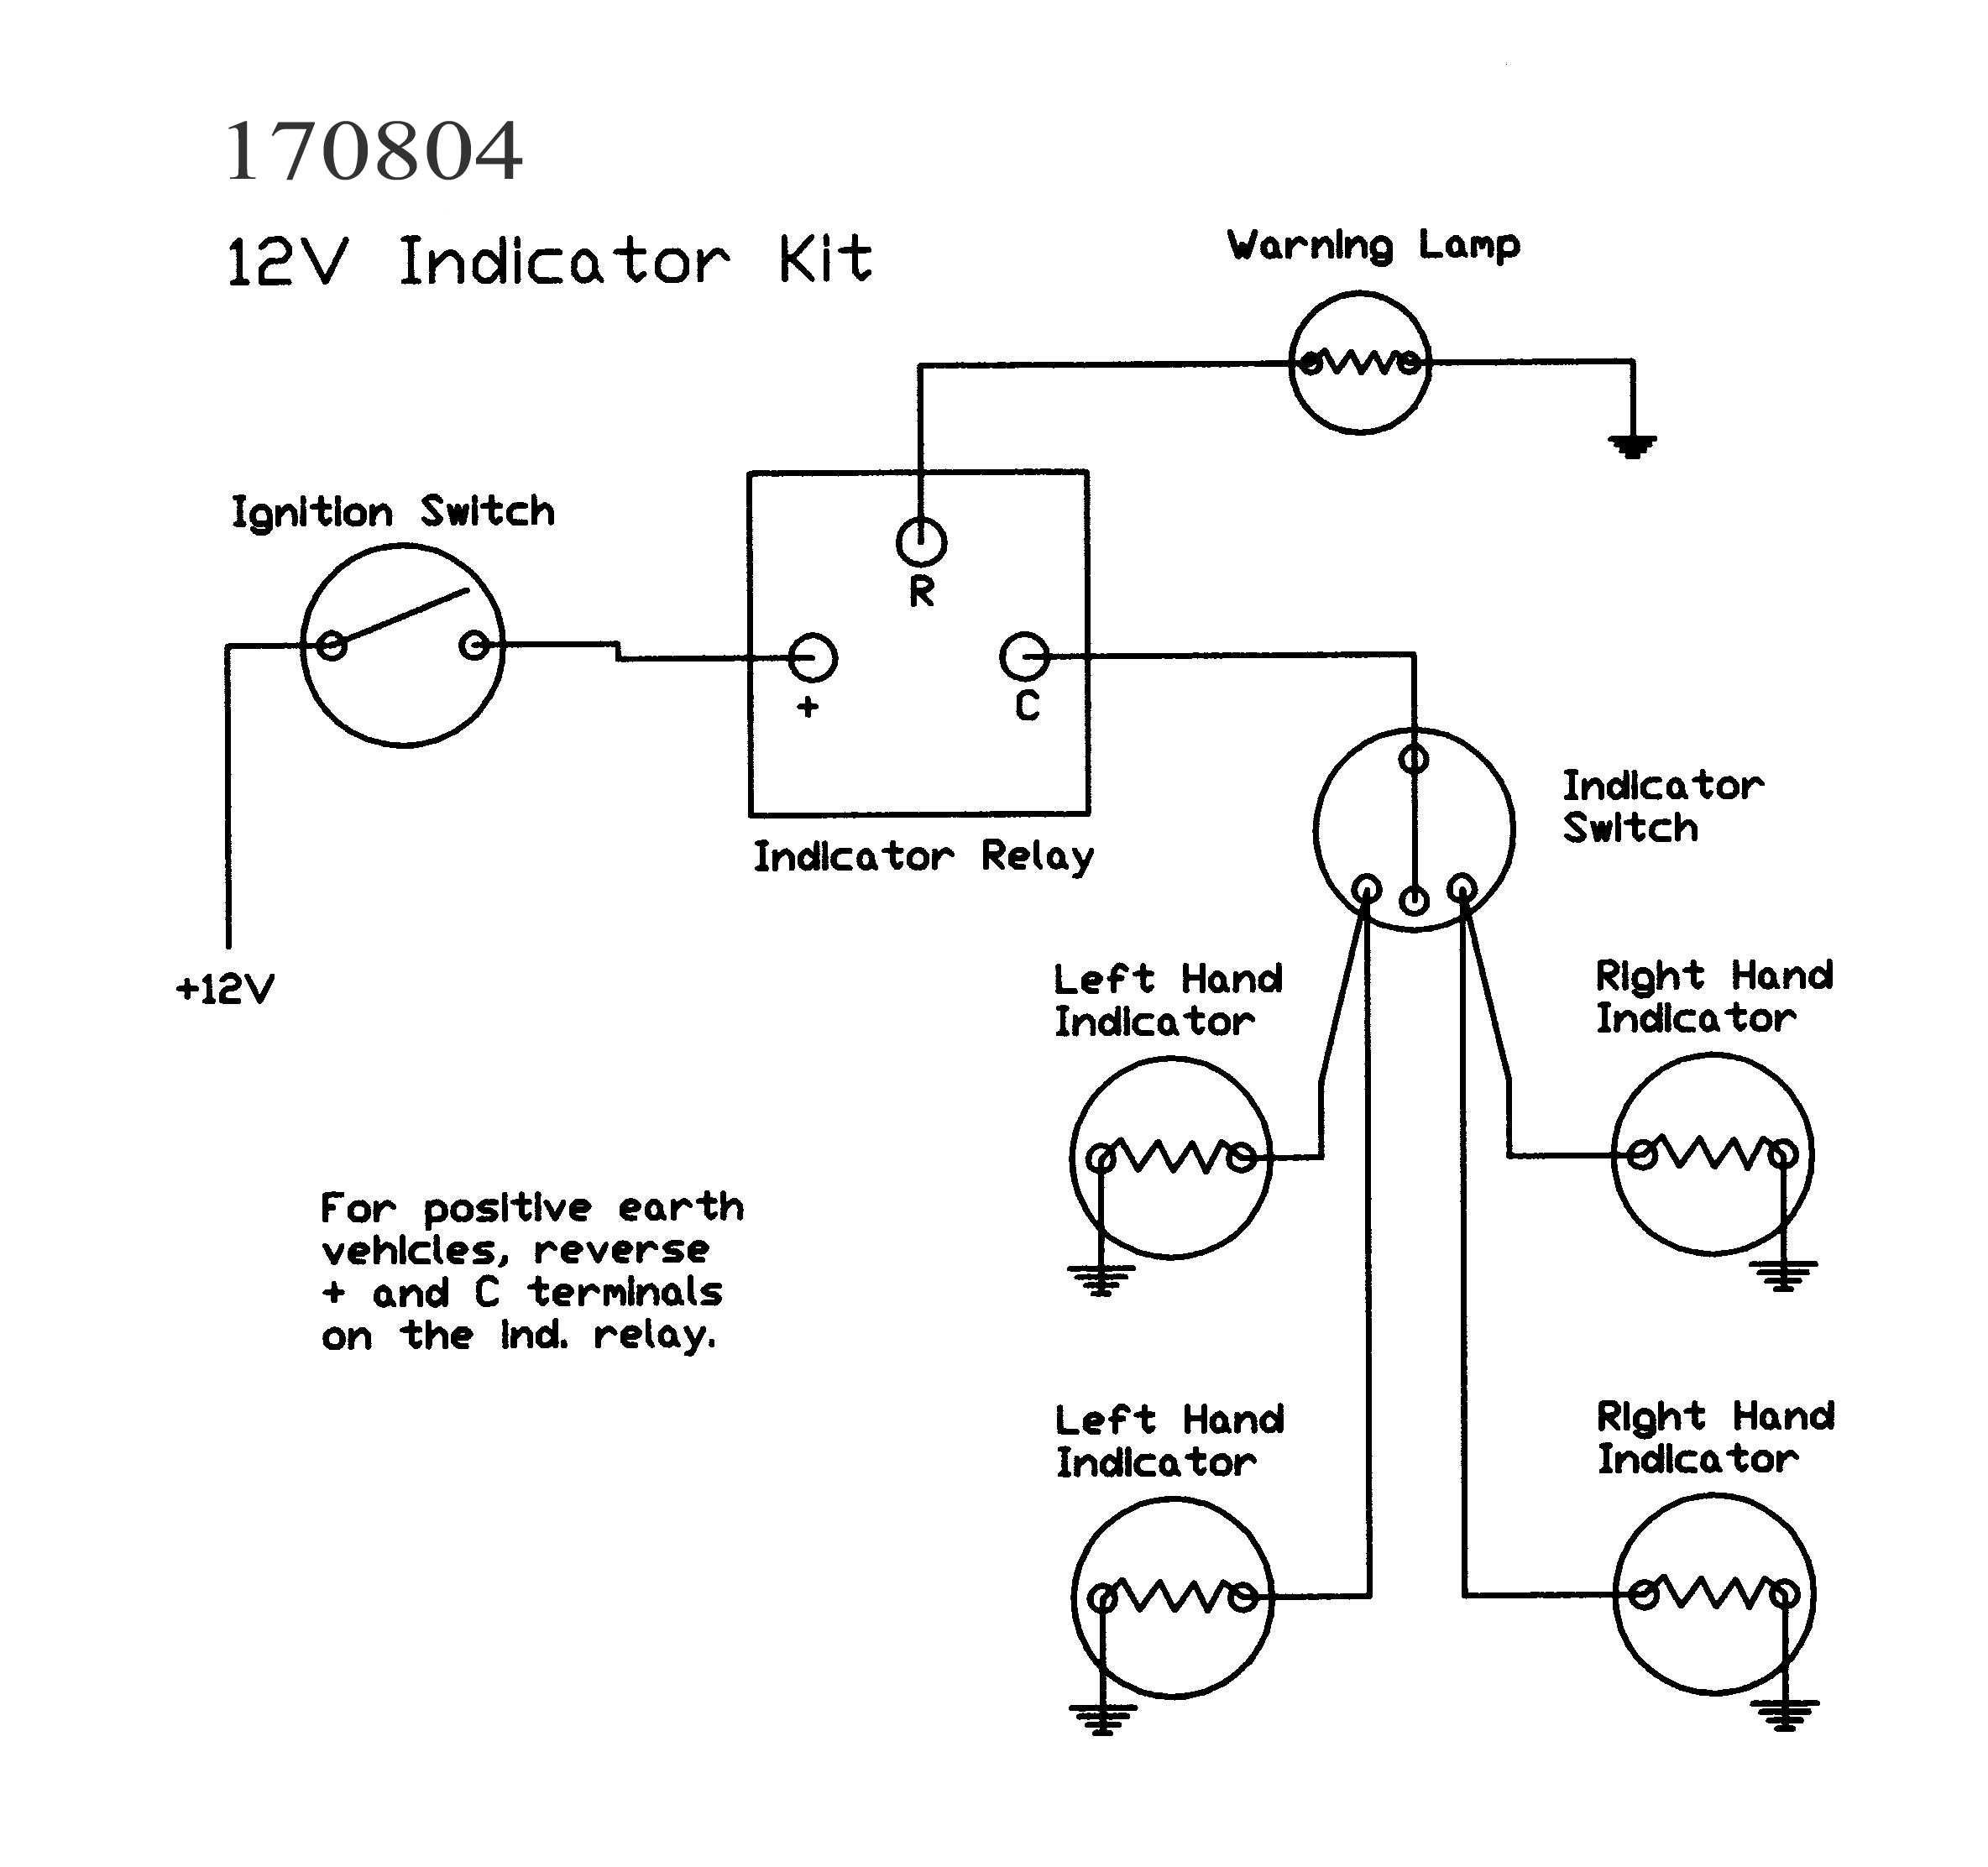 170804_(12v)_schematic indicator kits (without lamps) flasher wiring diagram 12v at mifinder.co